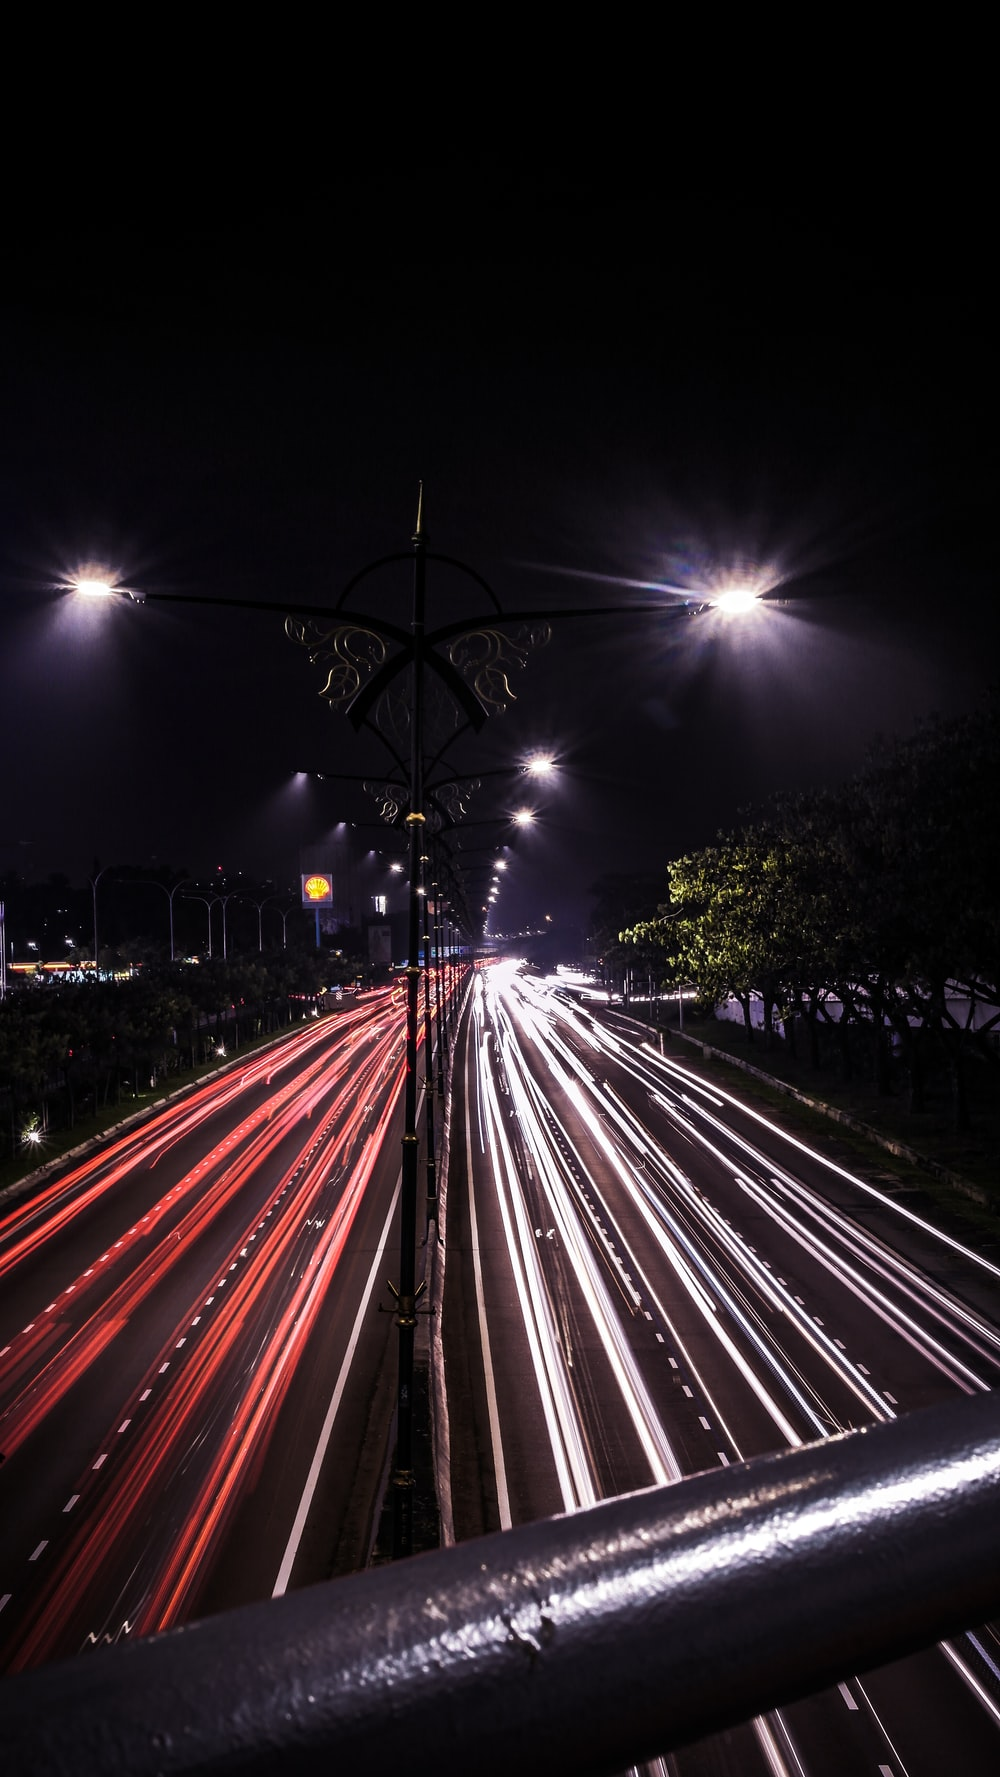 time lapse photo of cars passing by during nighttime